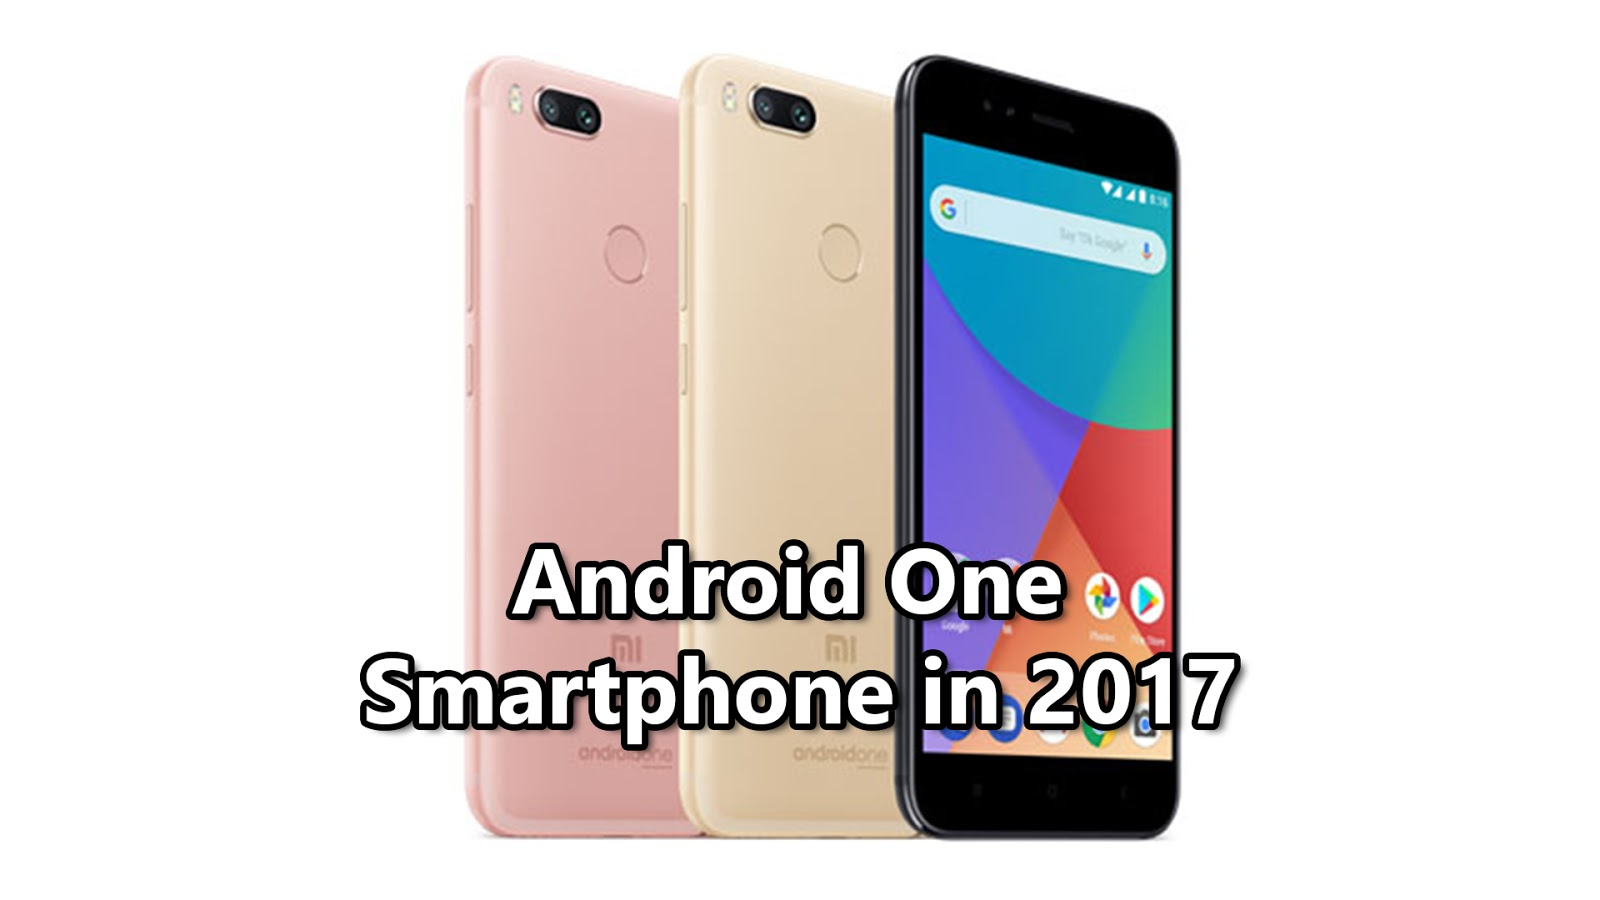 da46a2669 Many Malaysian might know that first Android One smartphone from Xiaomi